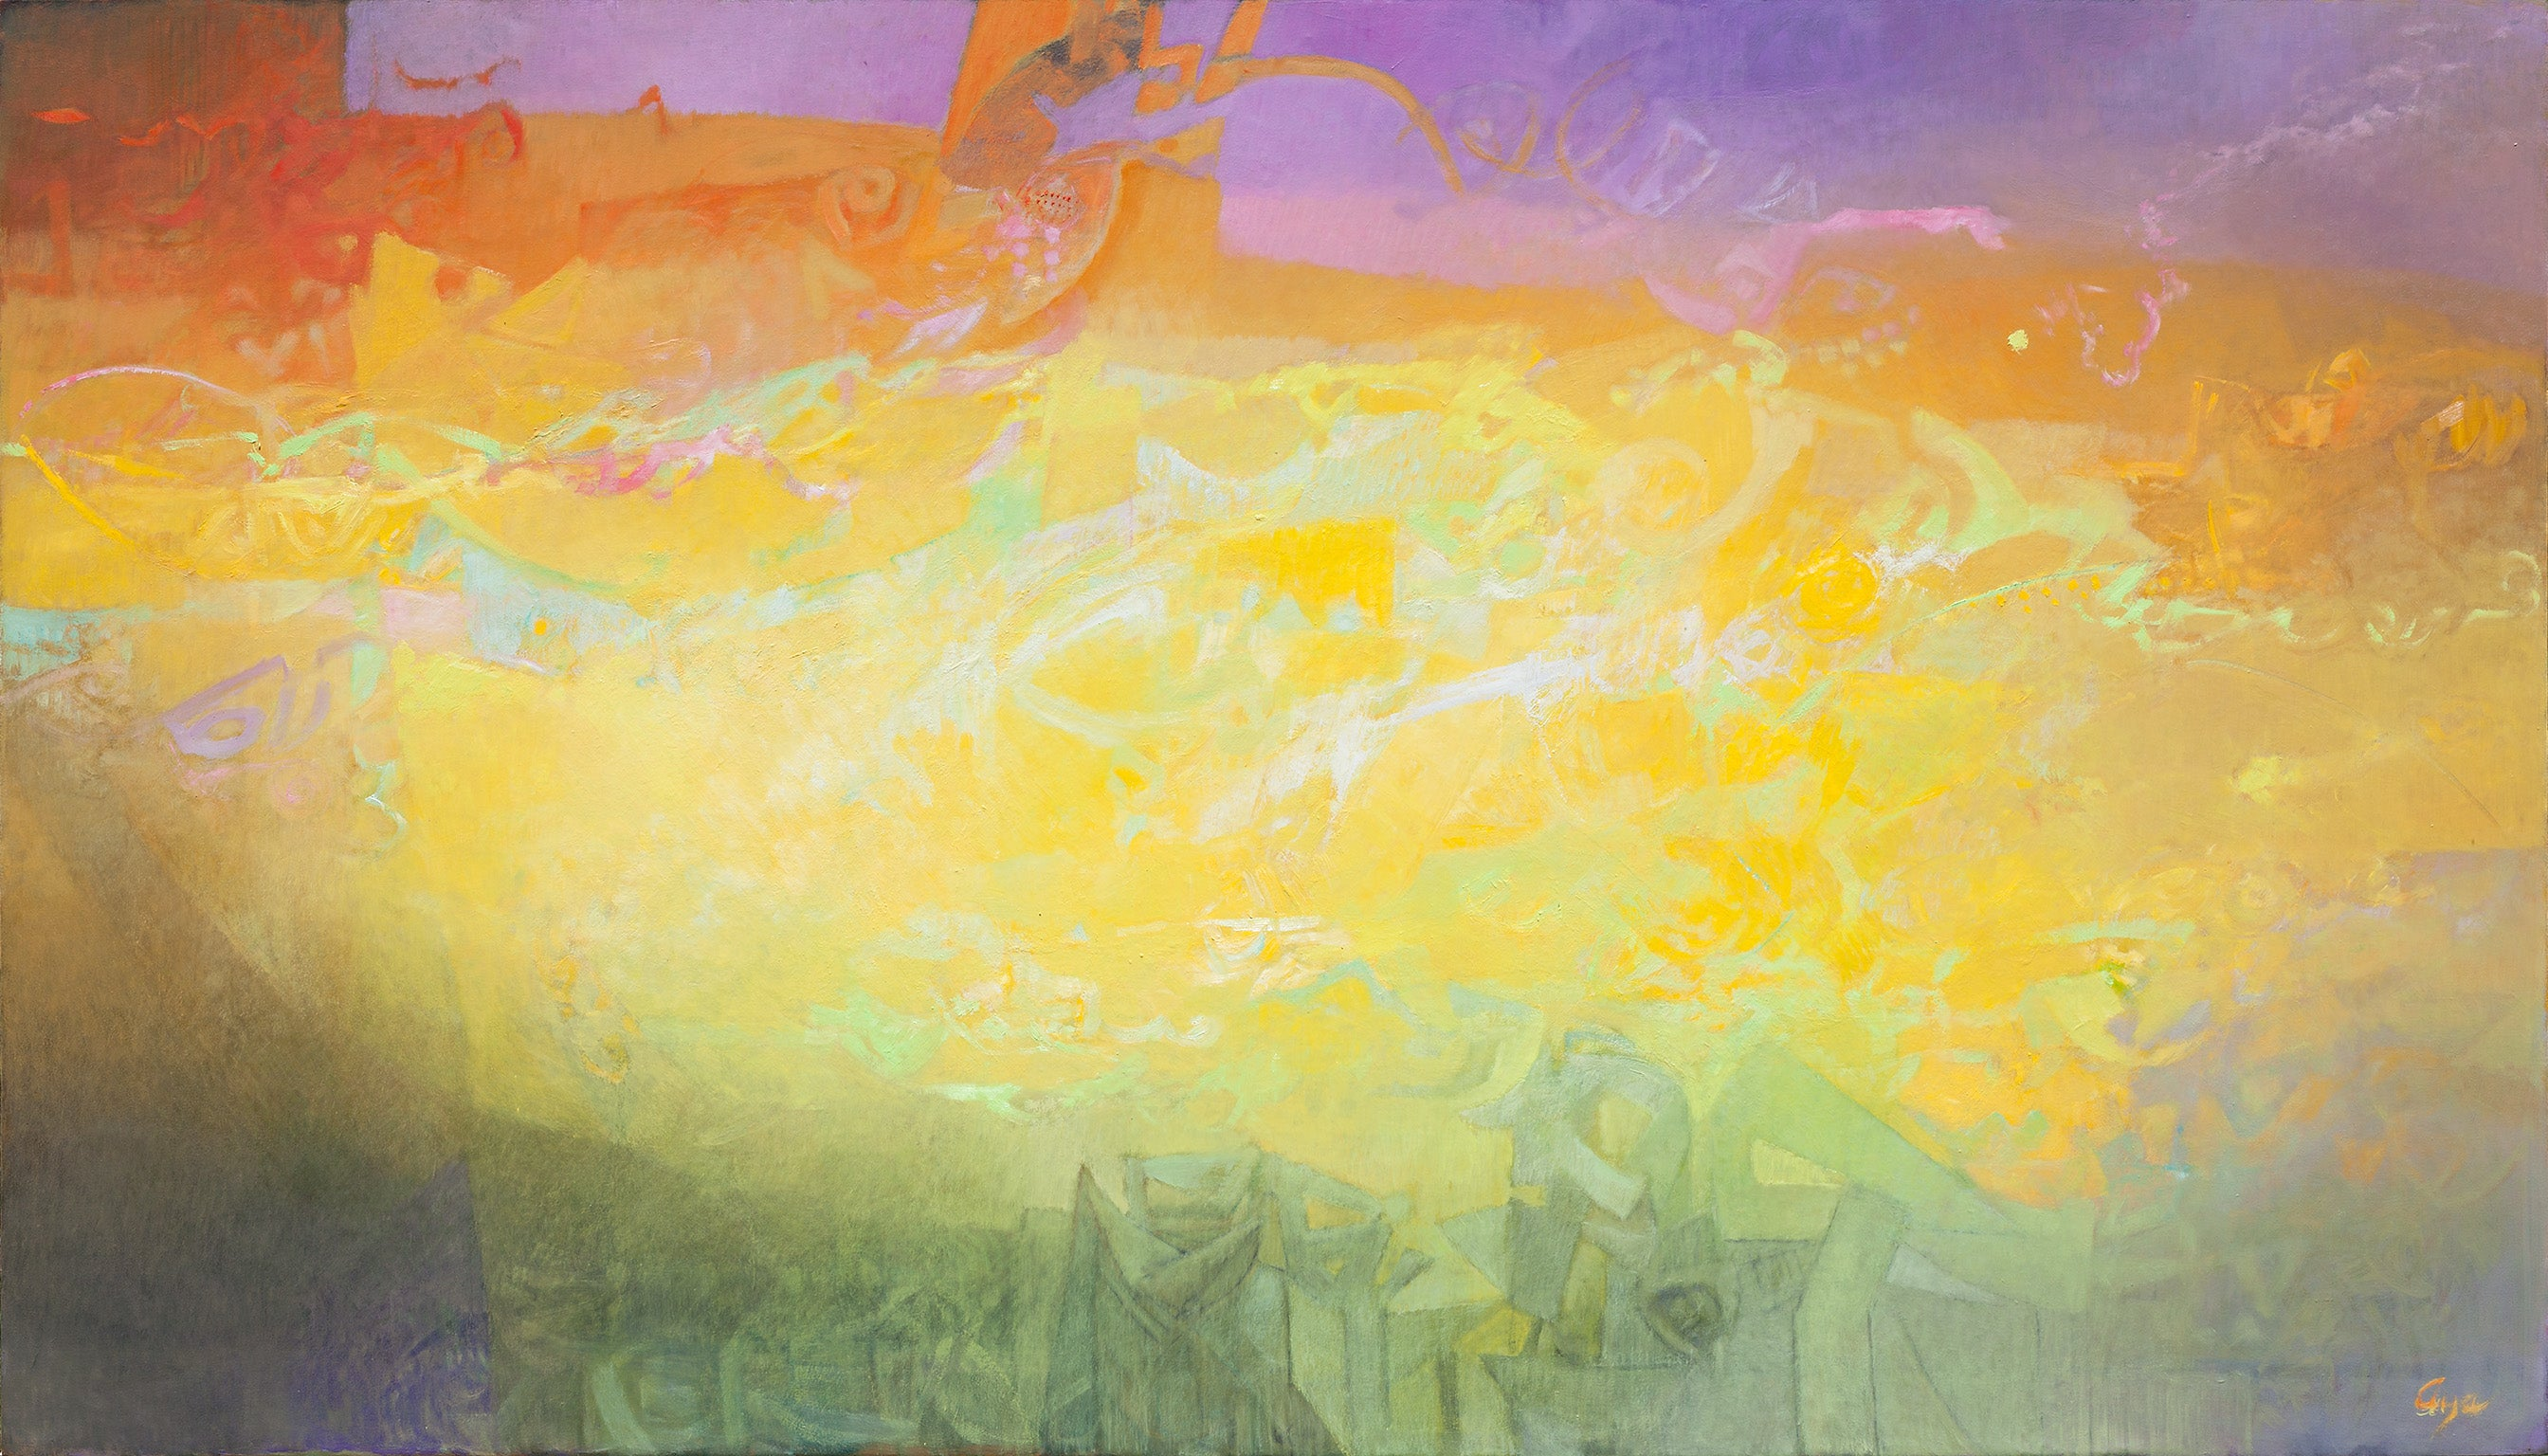 Las Sombras Que Seremos - Large Abstract Painting With Yellow, Orange and Purple